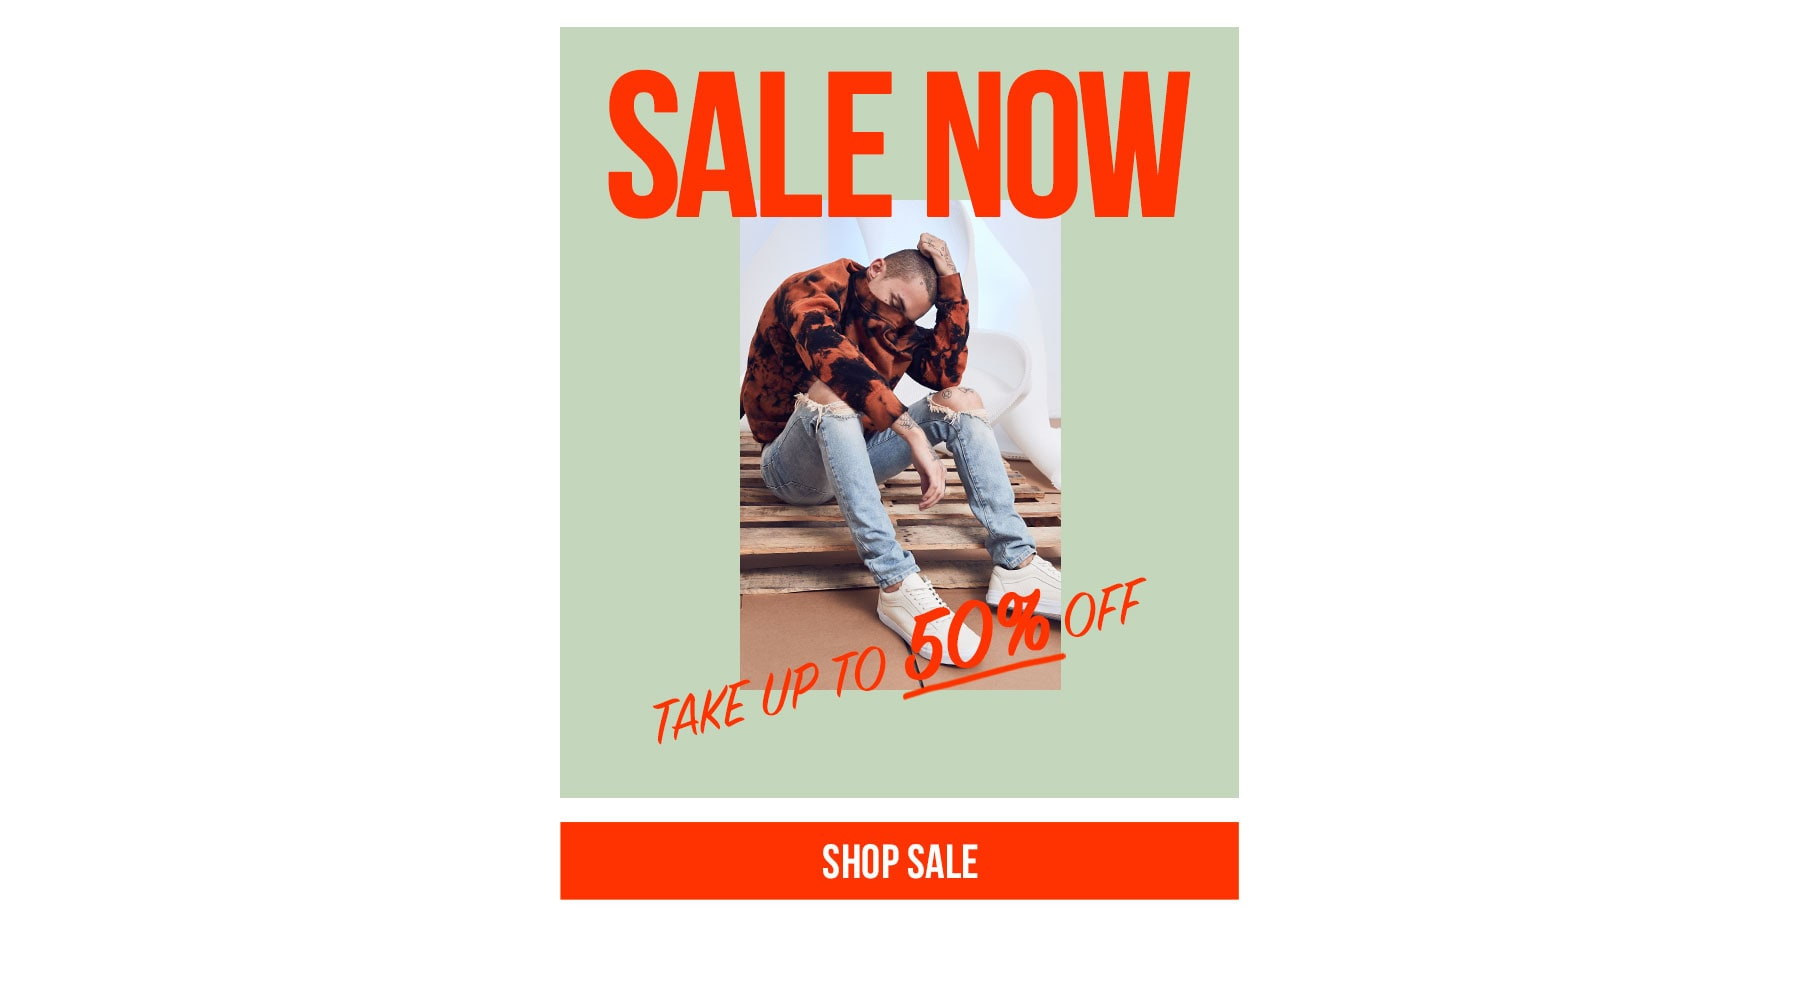 Sale now. Take up to 50% off. Shop sale.